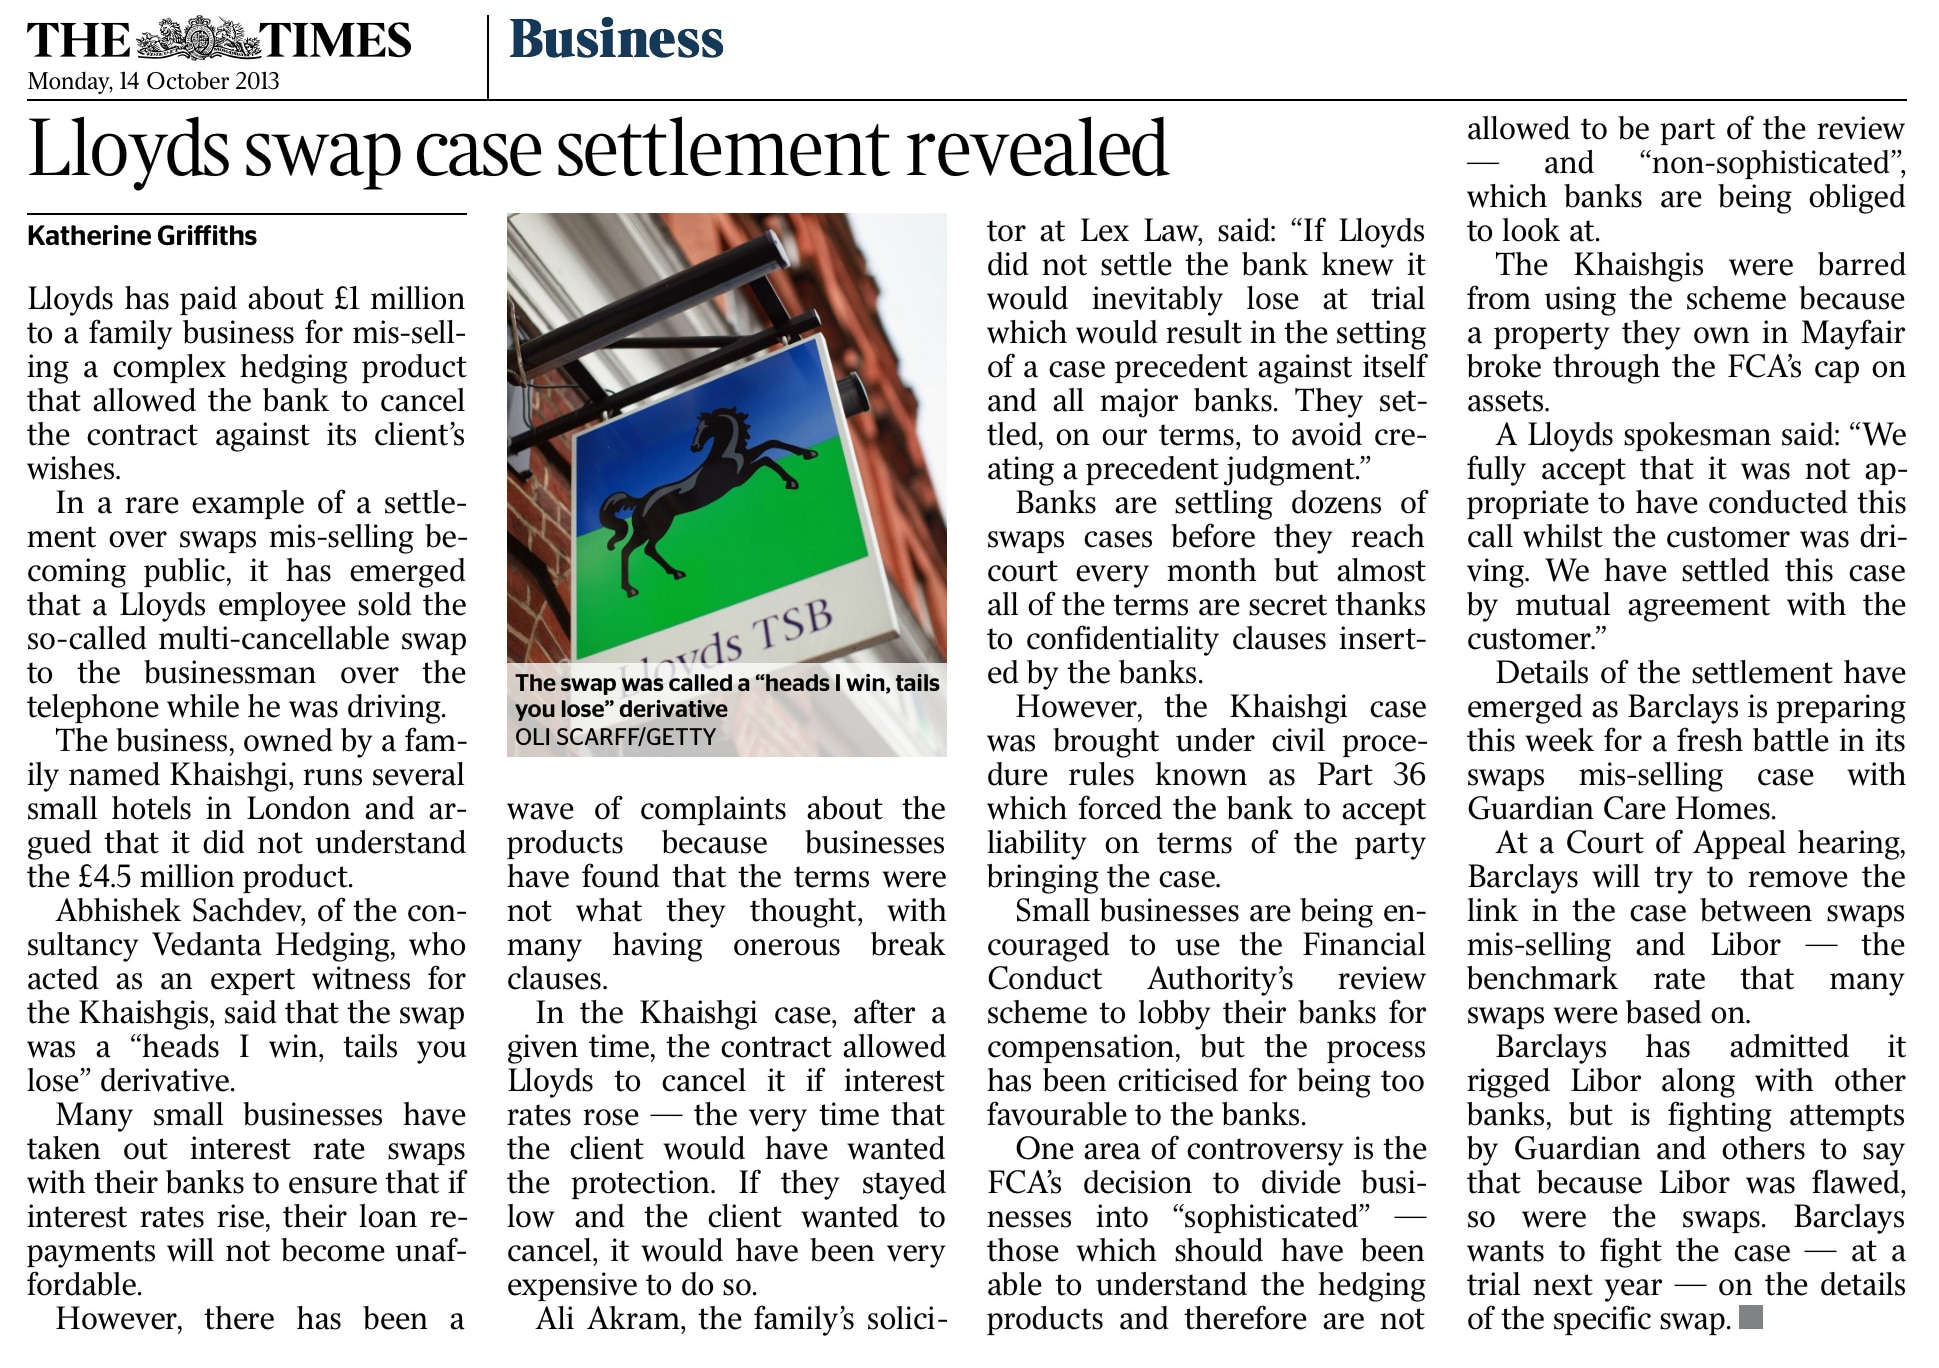 The Times - Lloyds case settlement revealed - LEXLAW Litigation Solicitors & Barristers Bank Swaps Mis-selling